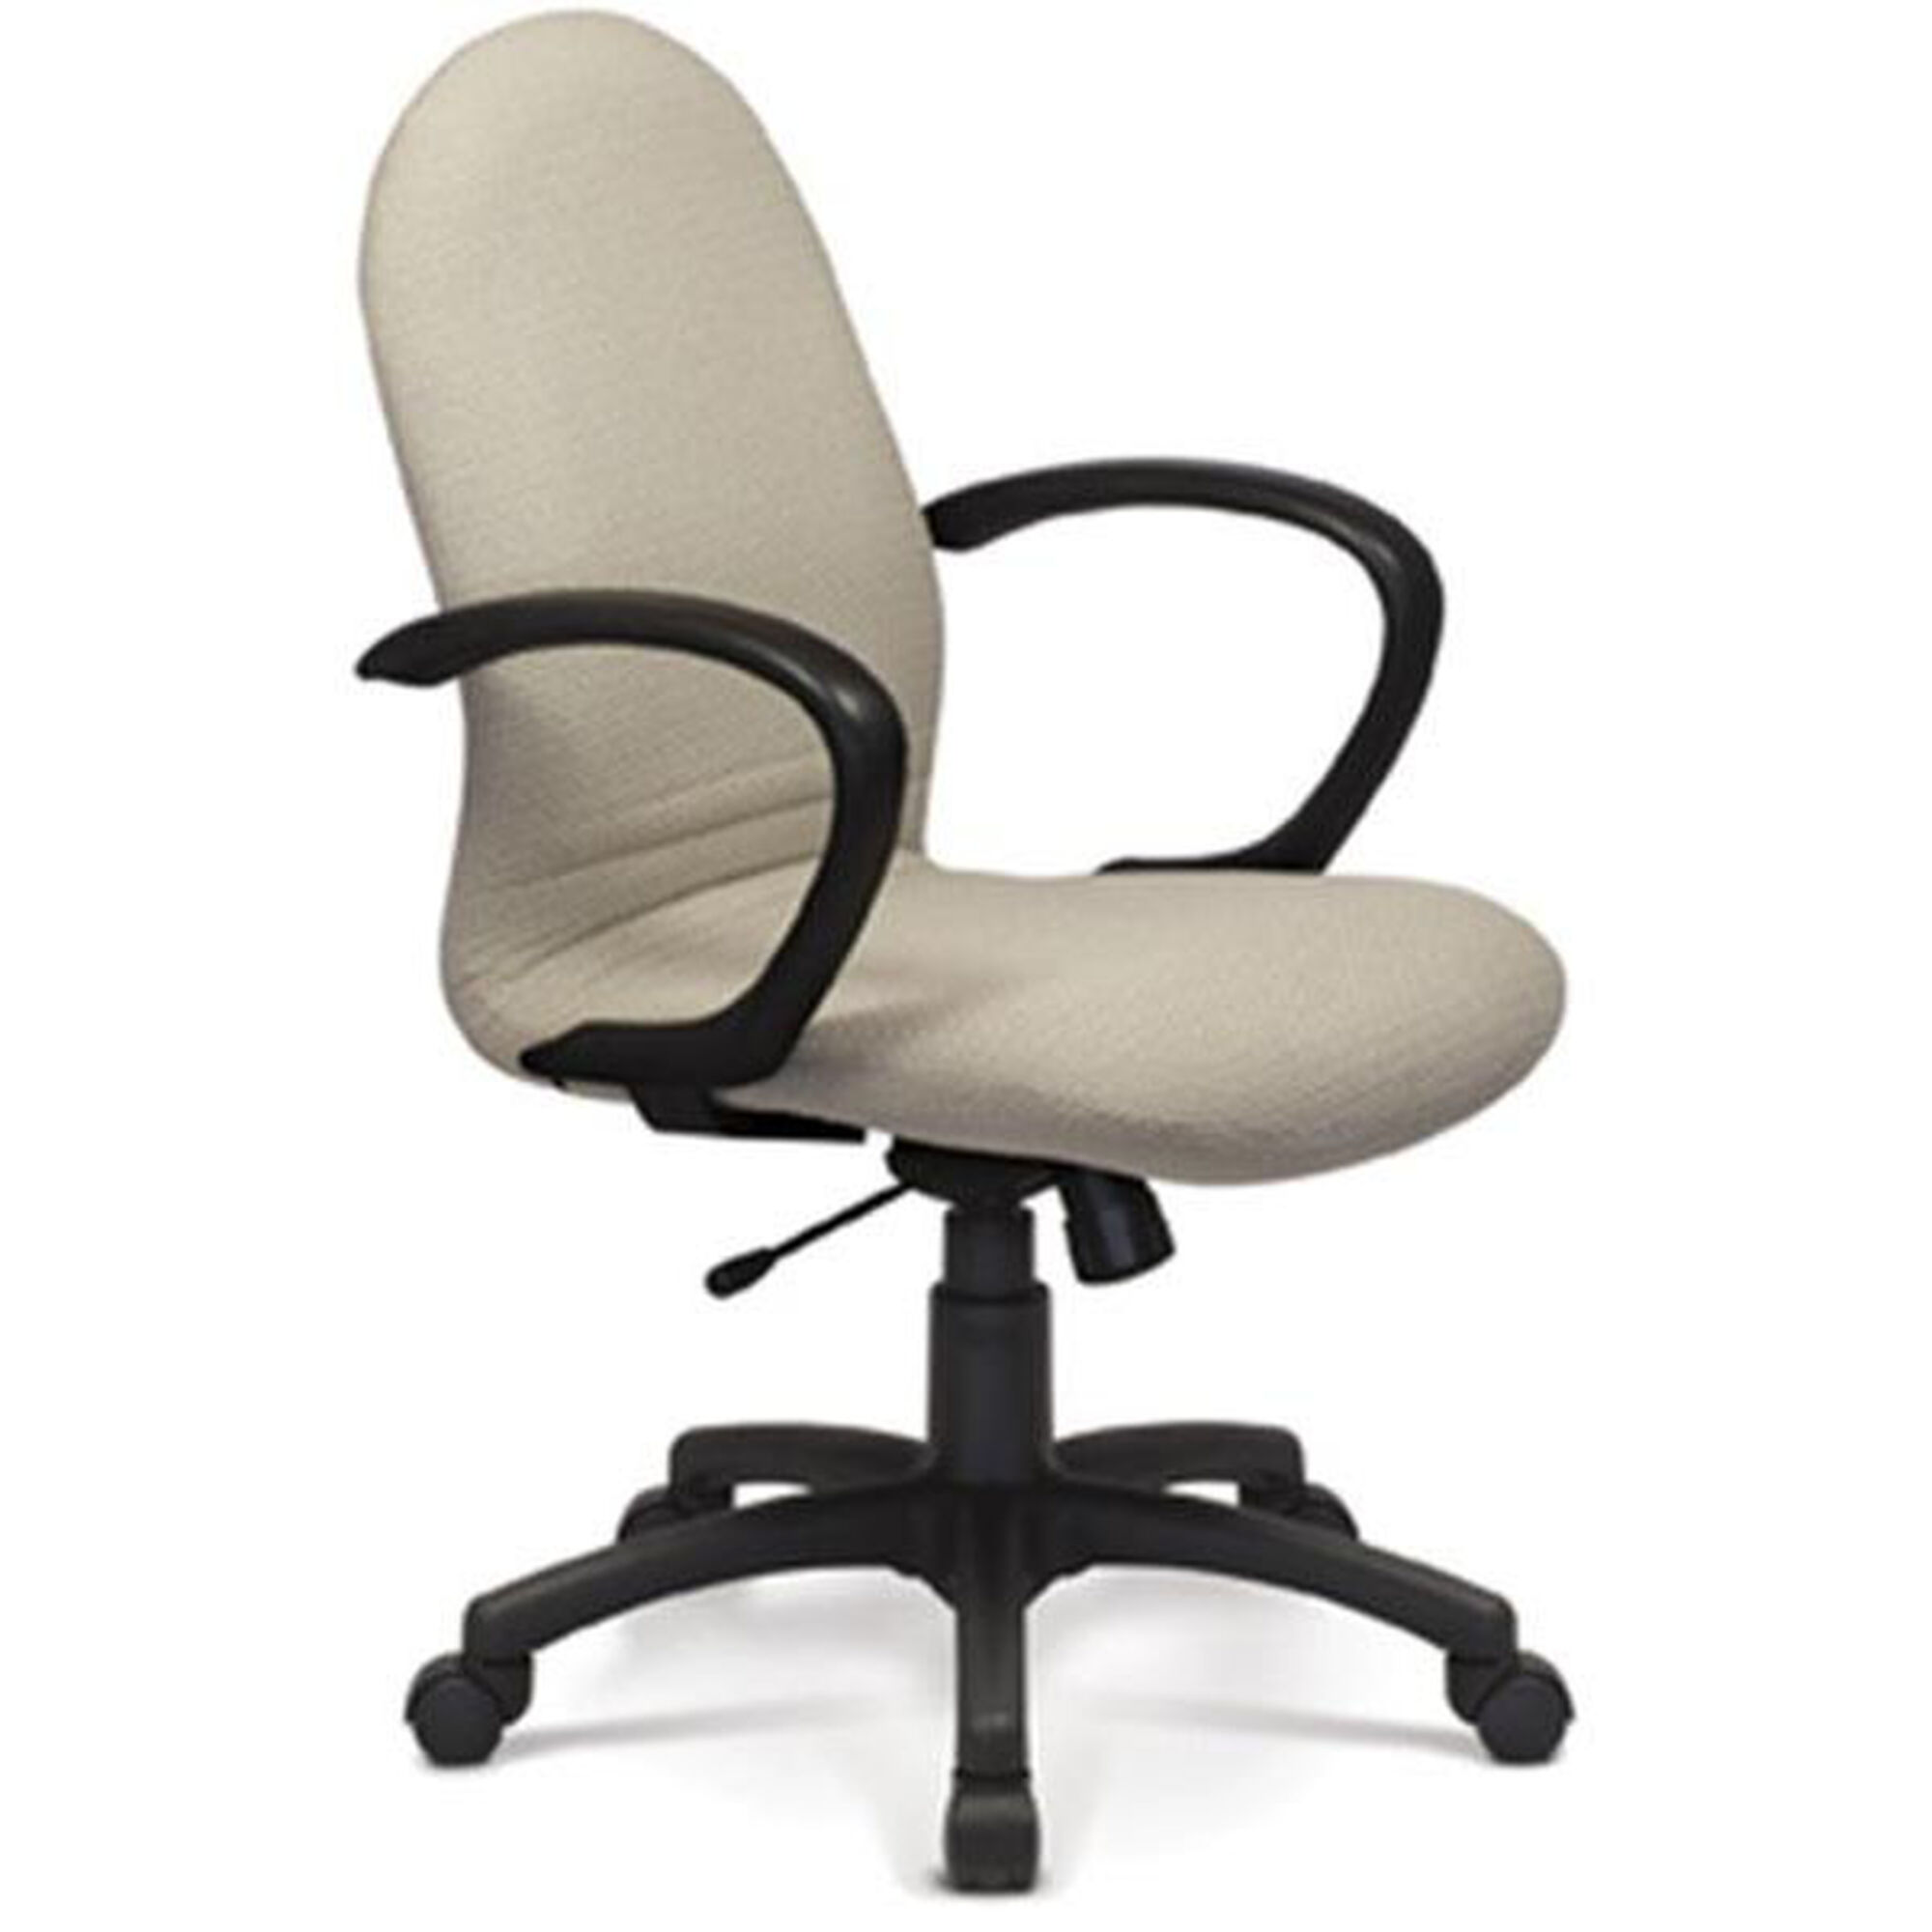 Art Design International : Art design international desire monoshell task chair with